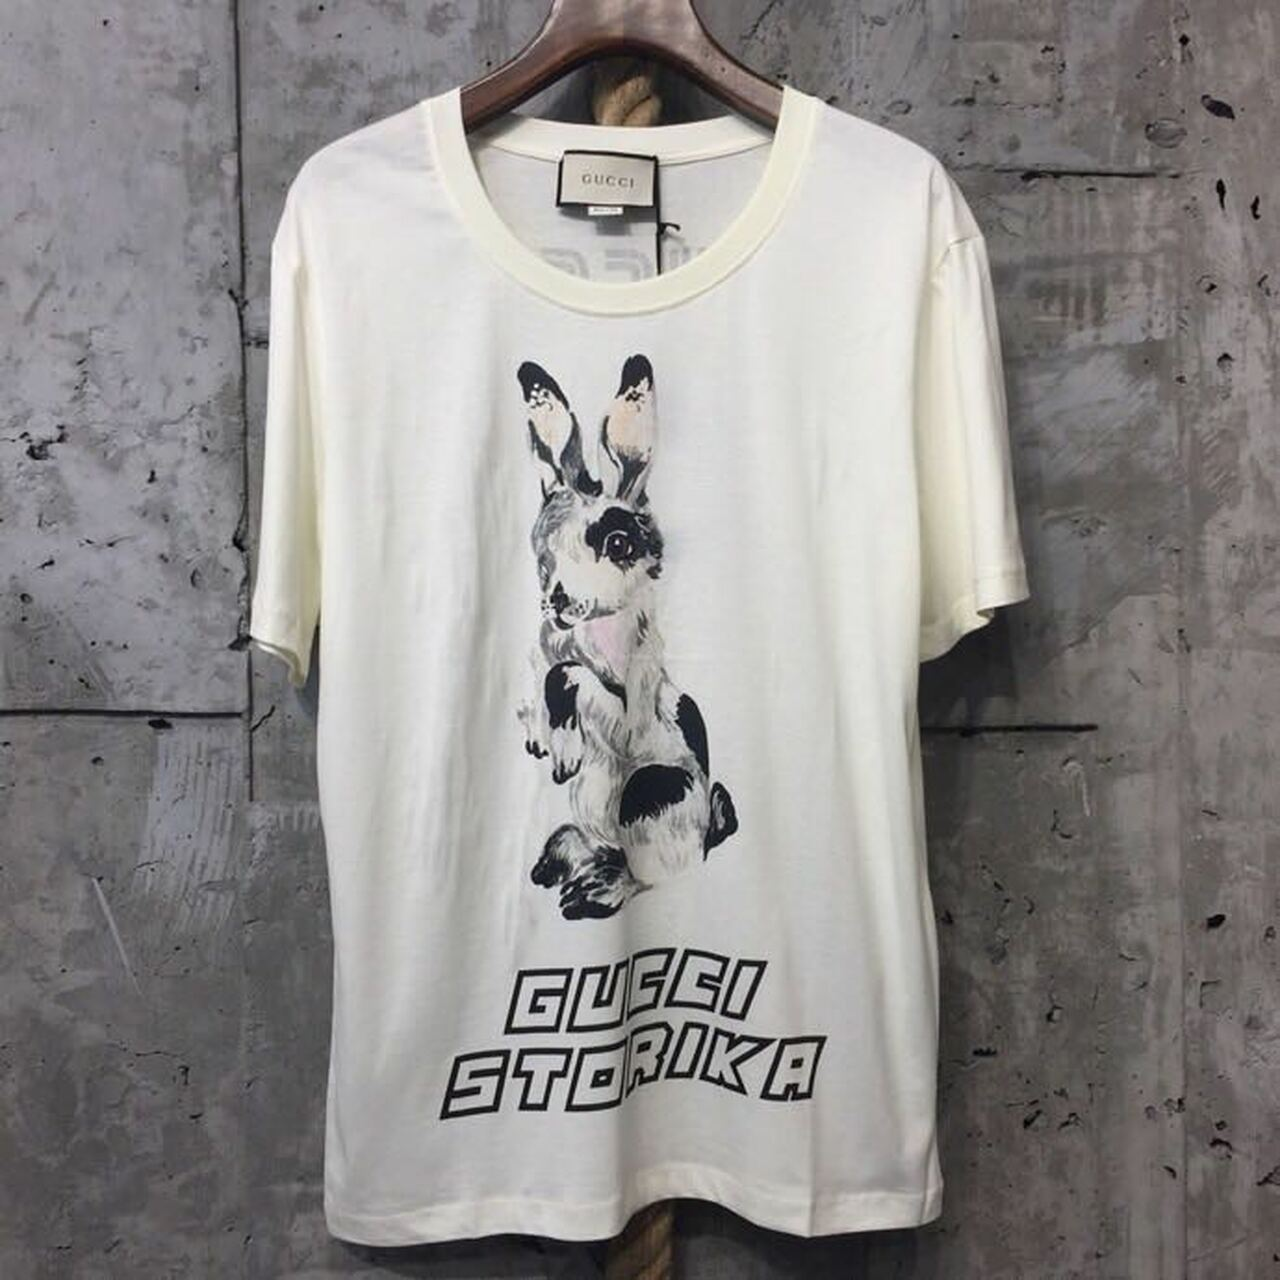 9466aaa7dfad Gucci Storika Bunny Print T-Shirt Mens Cruise 2019 Collection, White ...